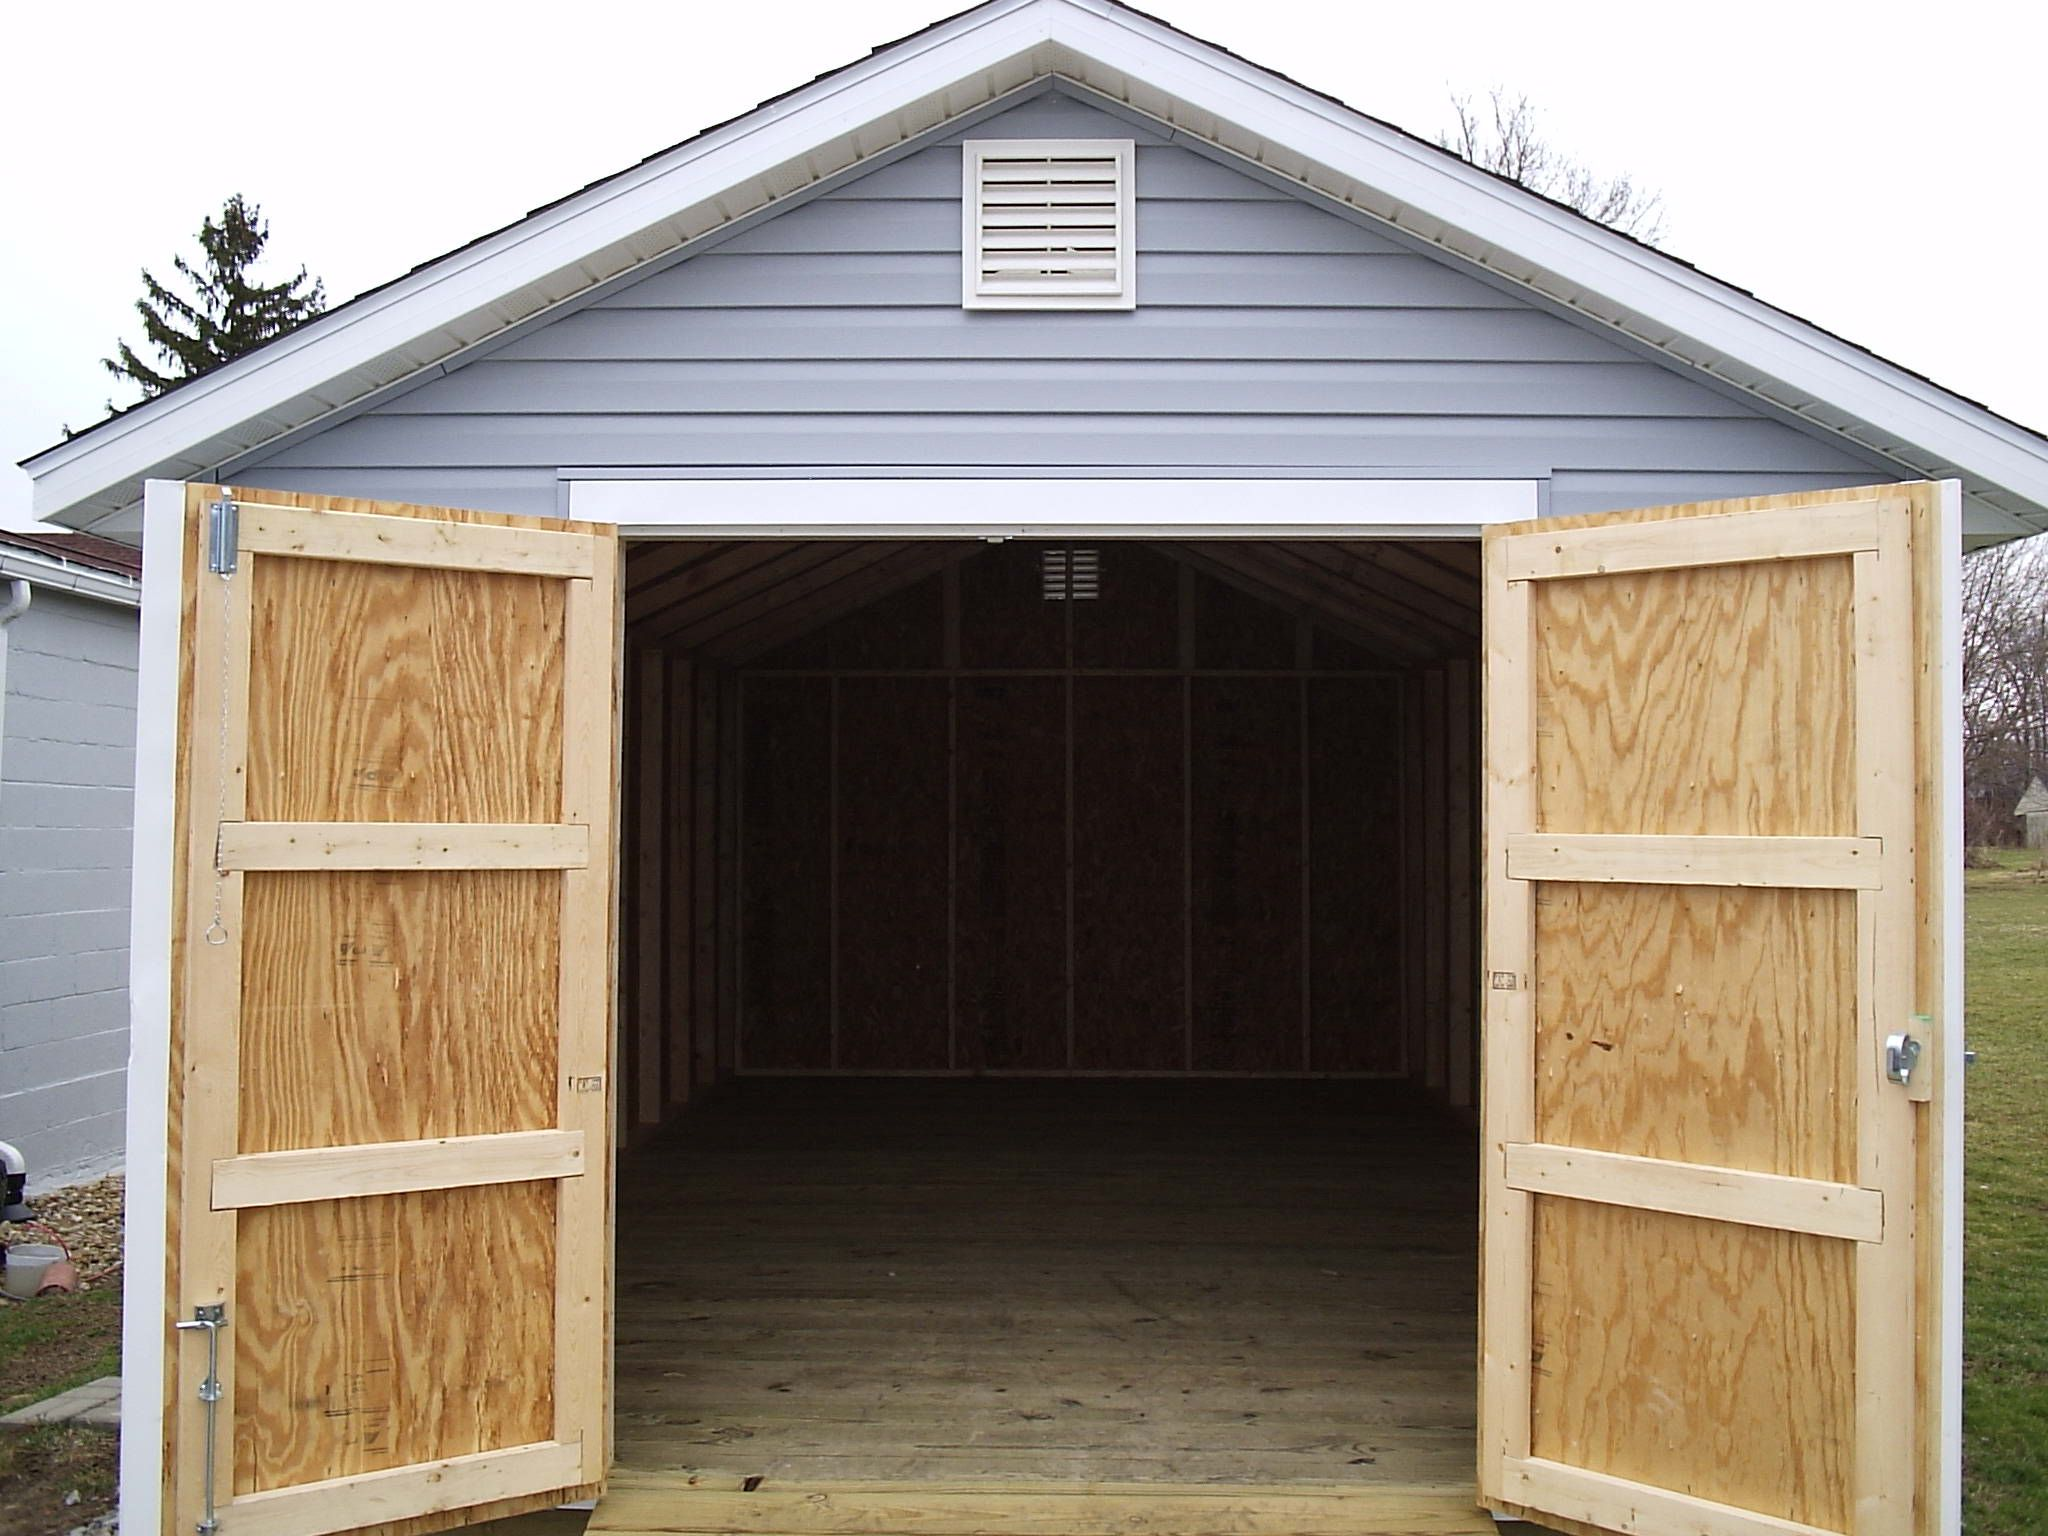 Shed doors deere shed pinterest doors storage and for Barn storage building plans